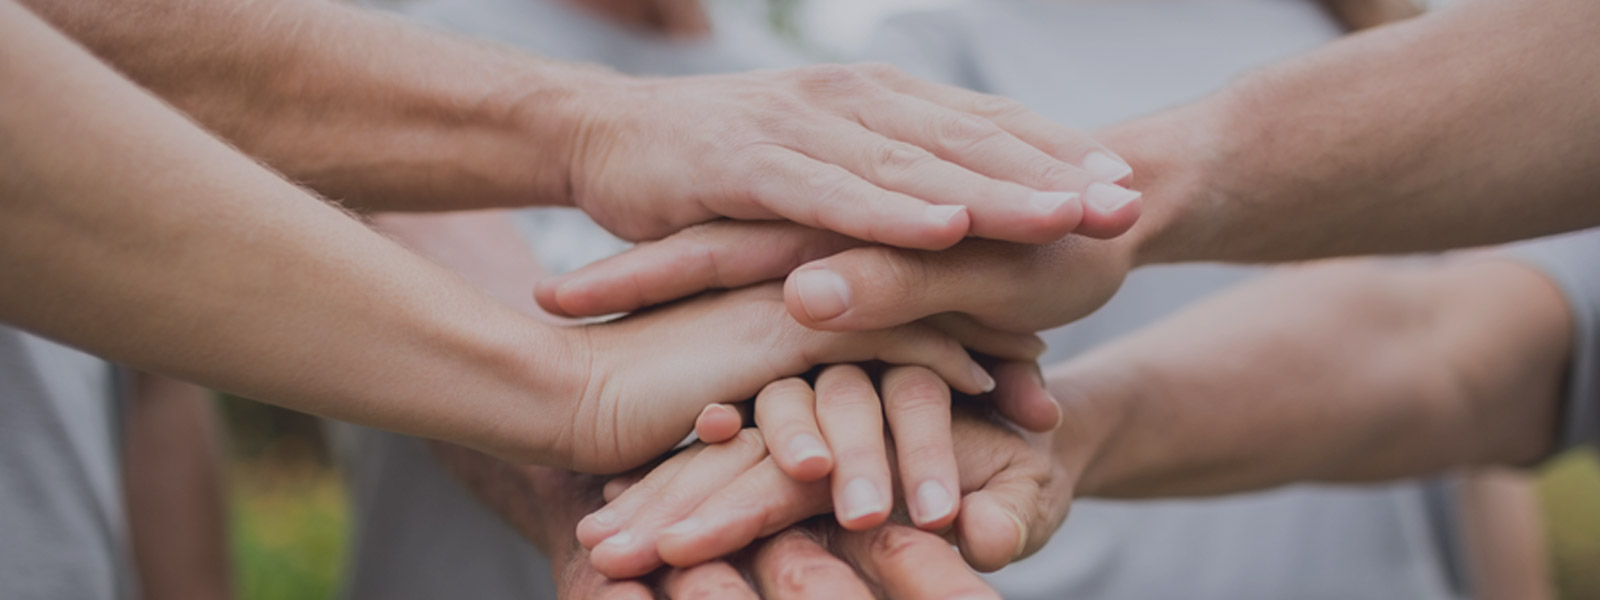 The Benefits of Charity: Why Independent Brokerages Should Partner with Nonprofits - Background